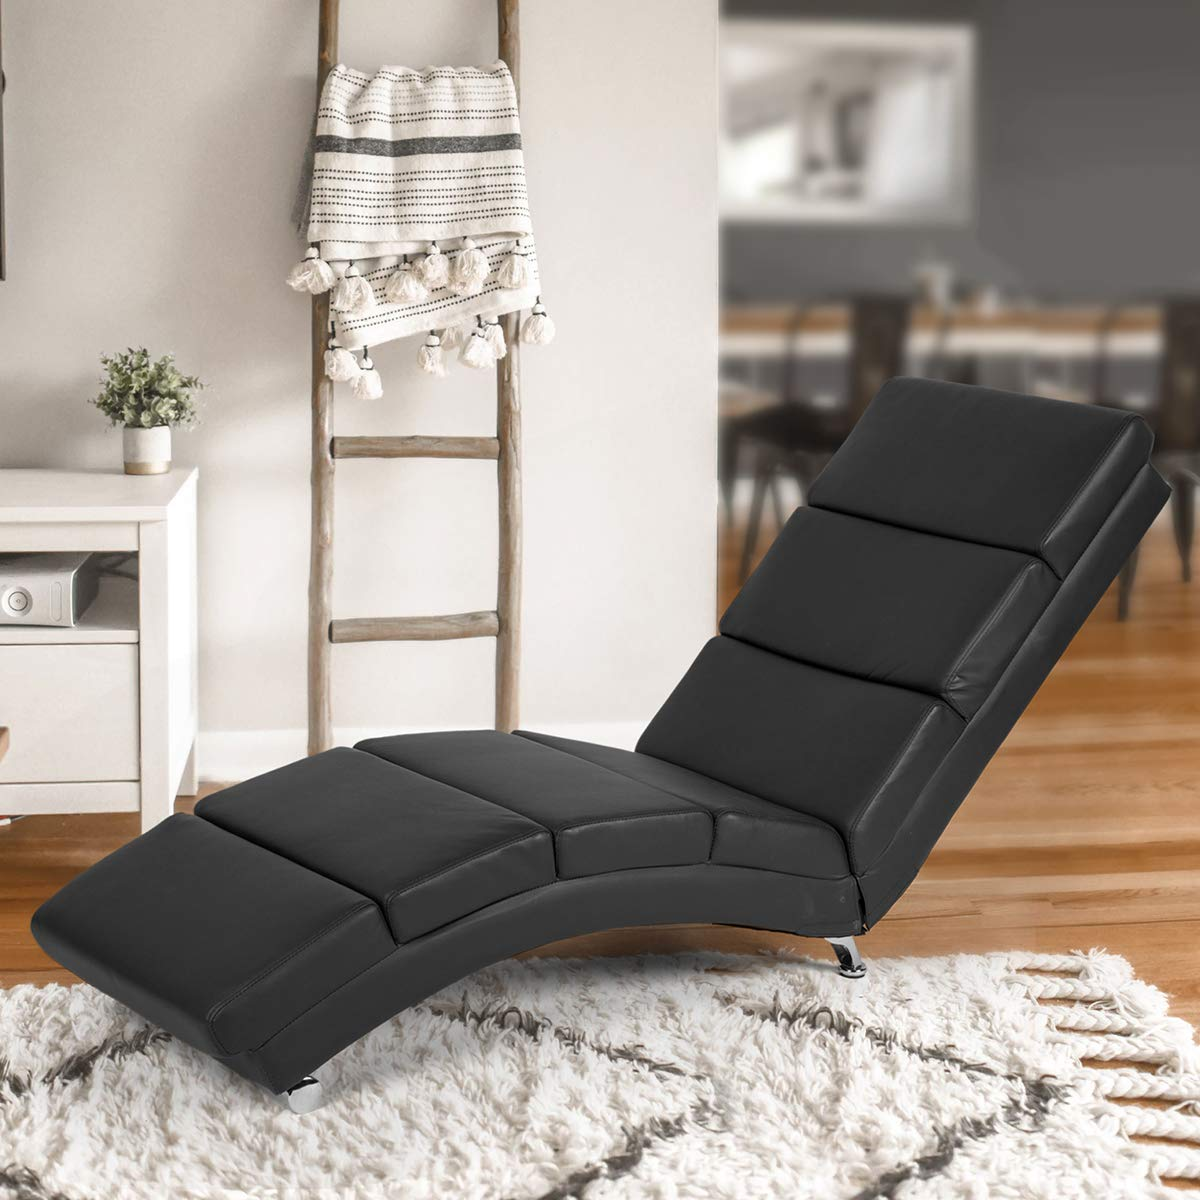 - AECOJOY Massage Chaise Lounge Couch Black Modern Indoor Chaise